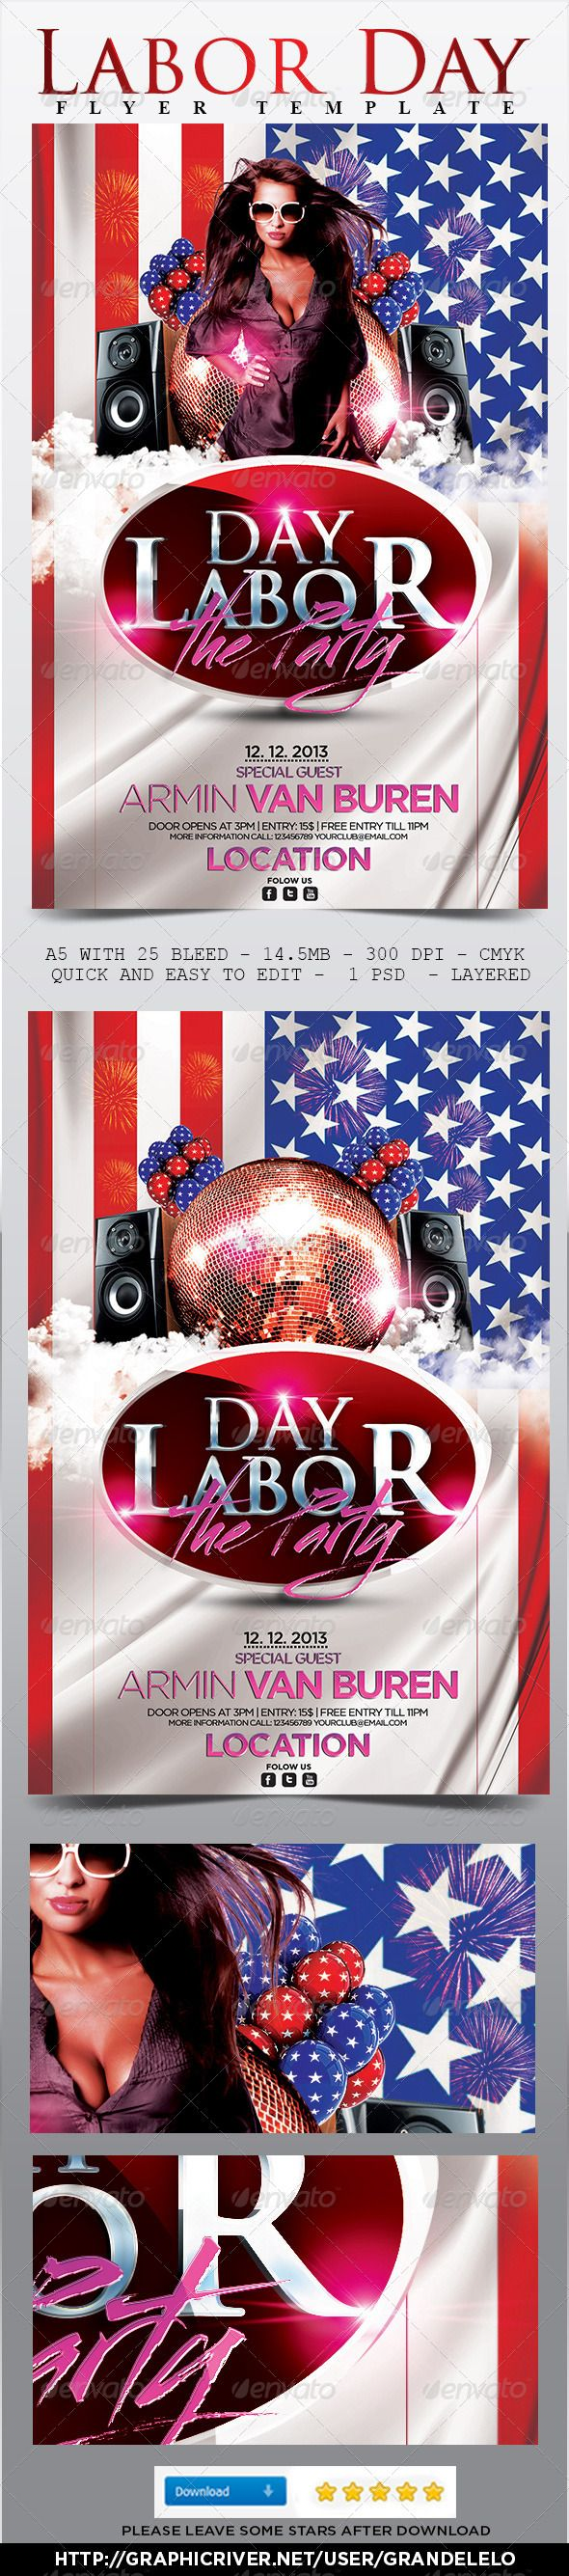 Labor Day Flyer Template | Flyer template, Labour and Party flyer